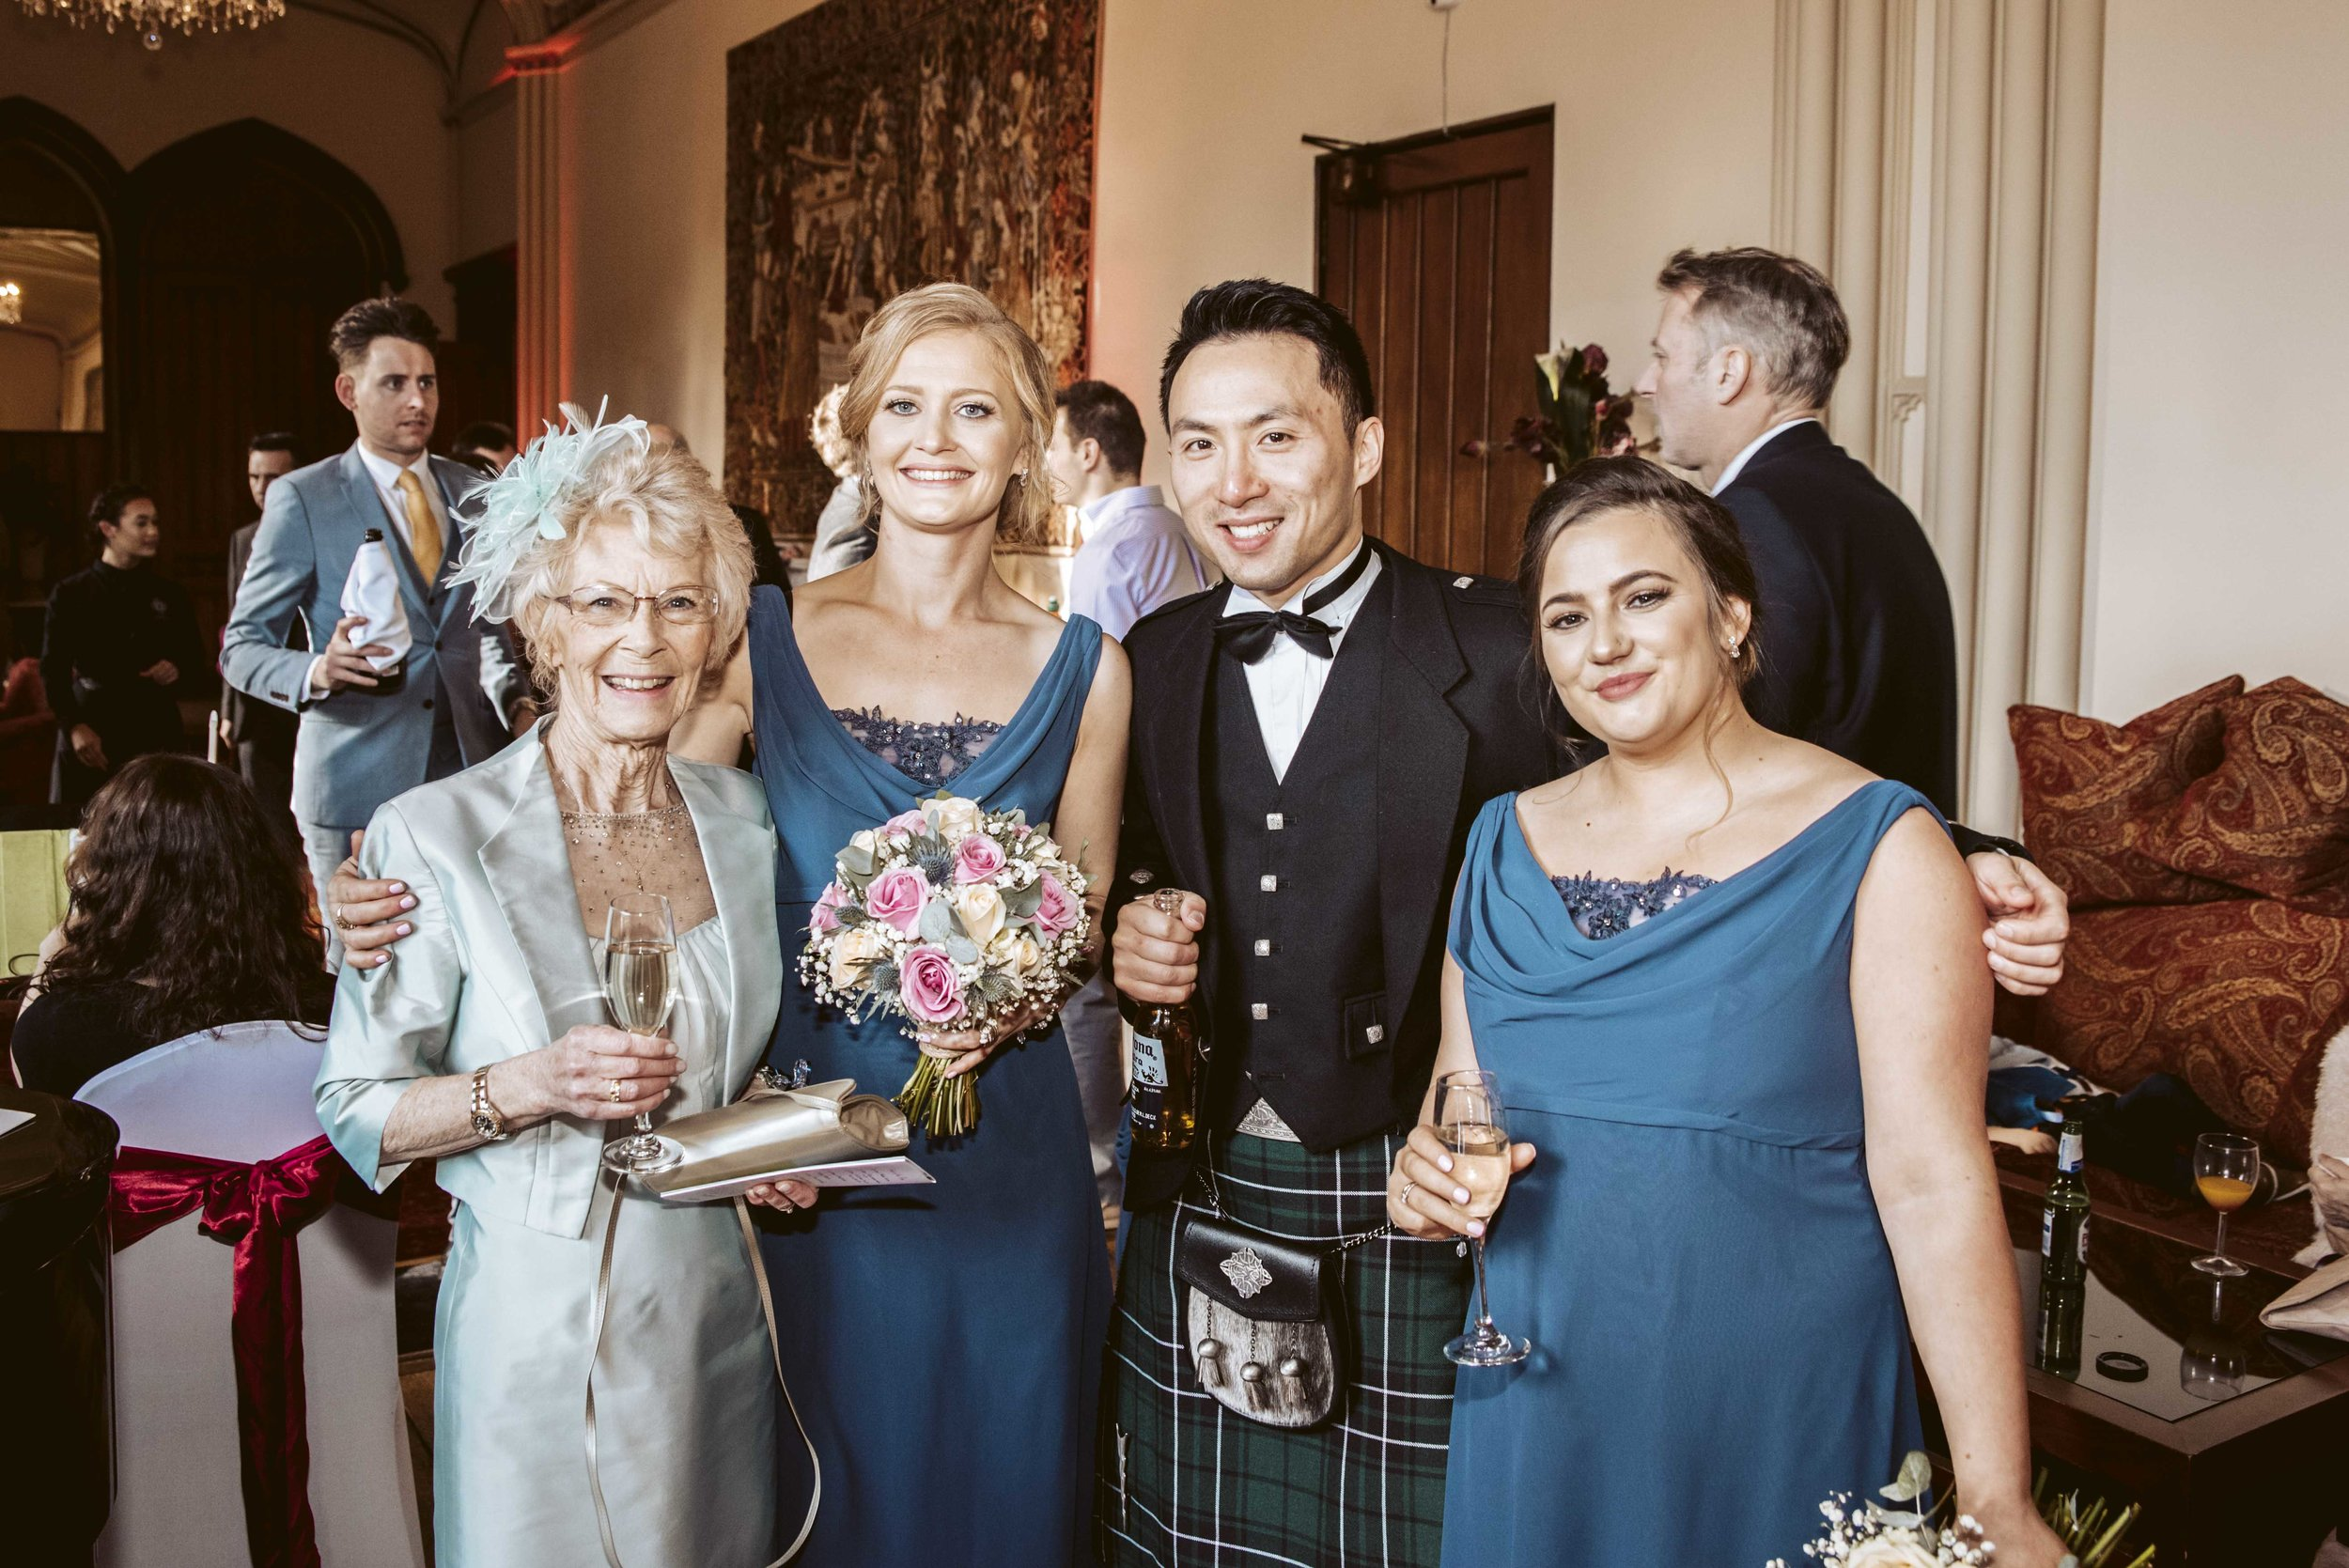 Mar Hall Wedding 2018, Haminsh & Emma McEwan 44.JPG